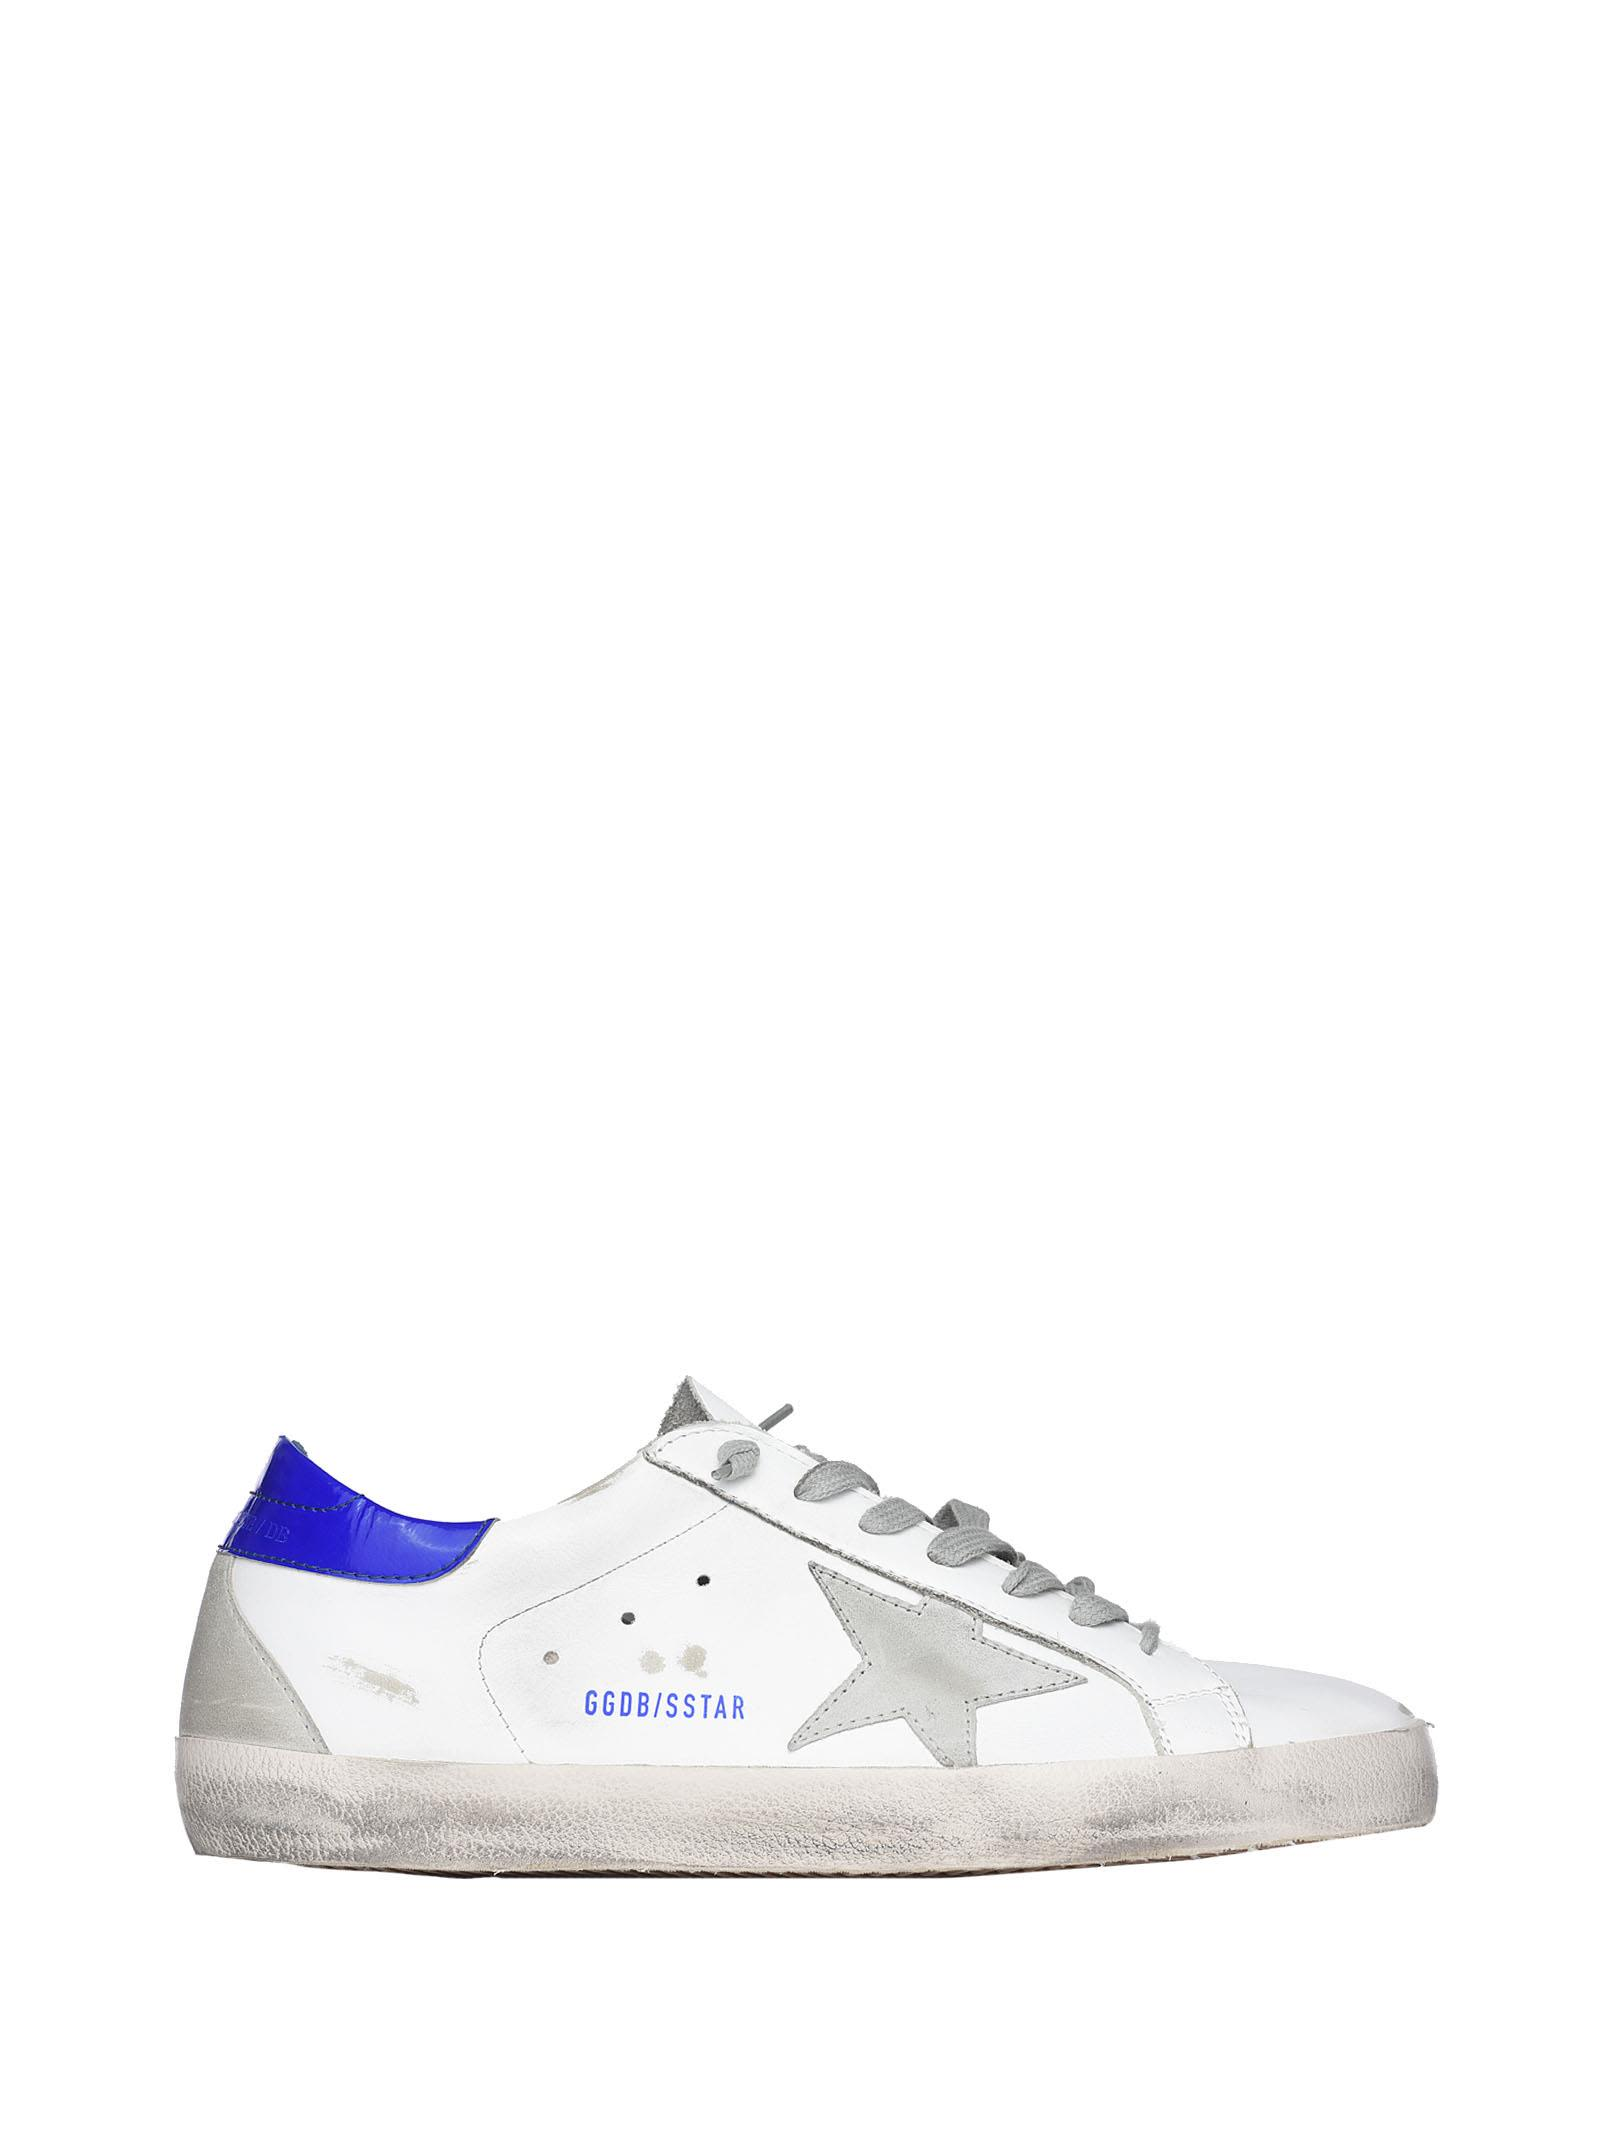 Golden Goose Superstar White And Blue Sneakers